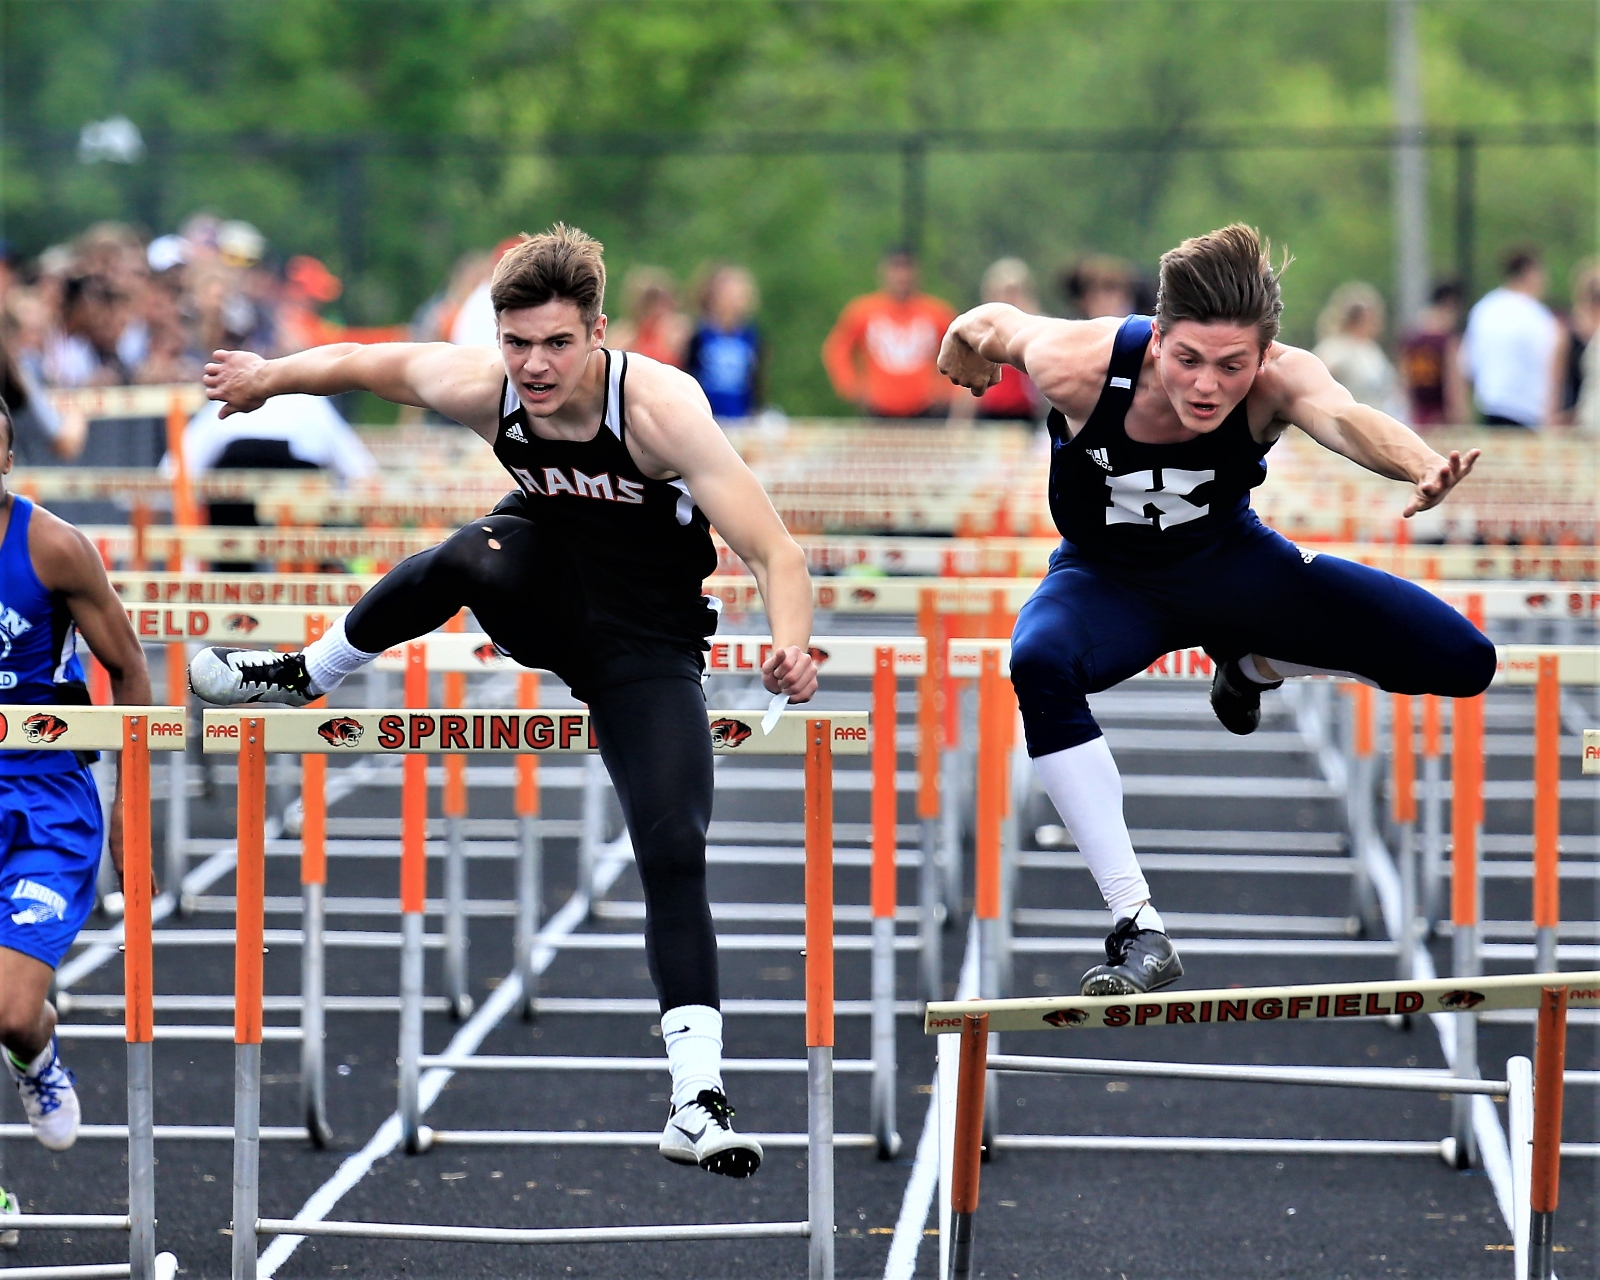 Chiclowe, Miller and 4 x 400 Relay Head to Regionals